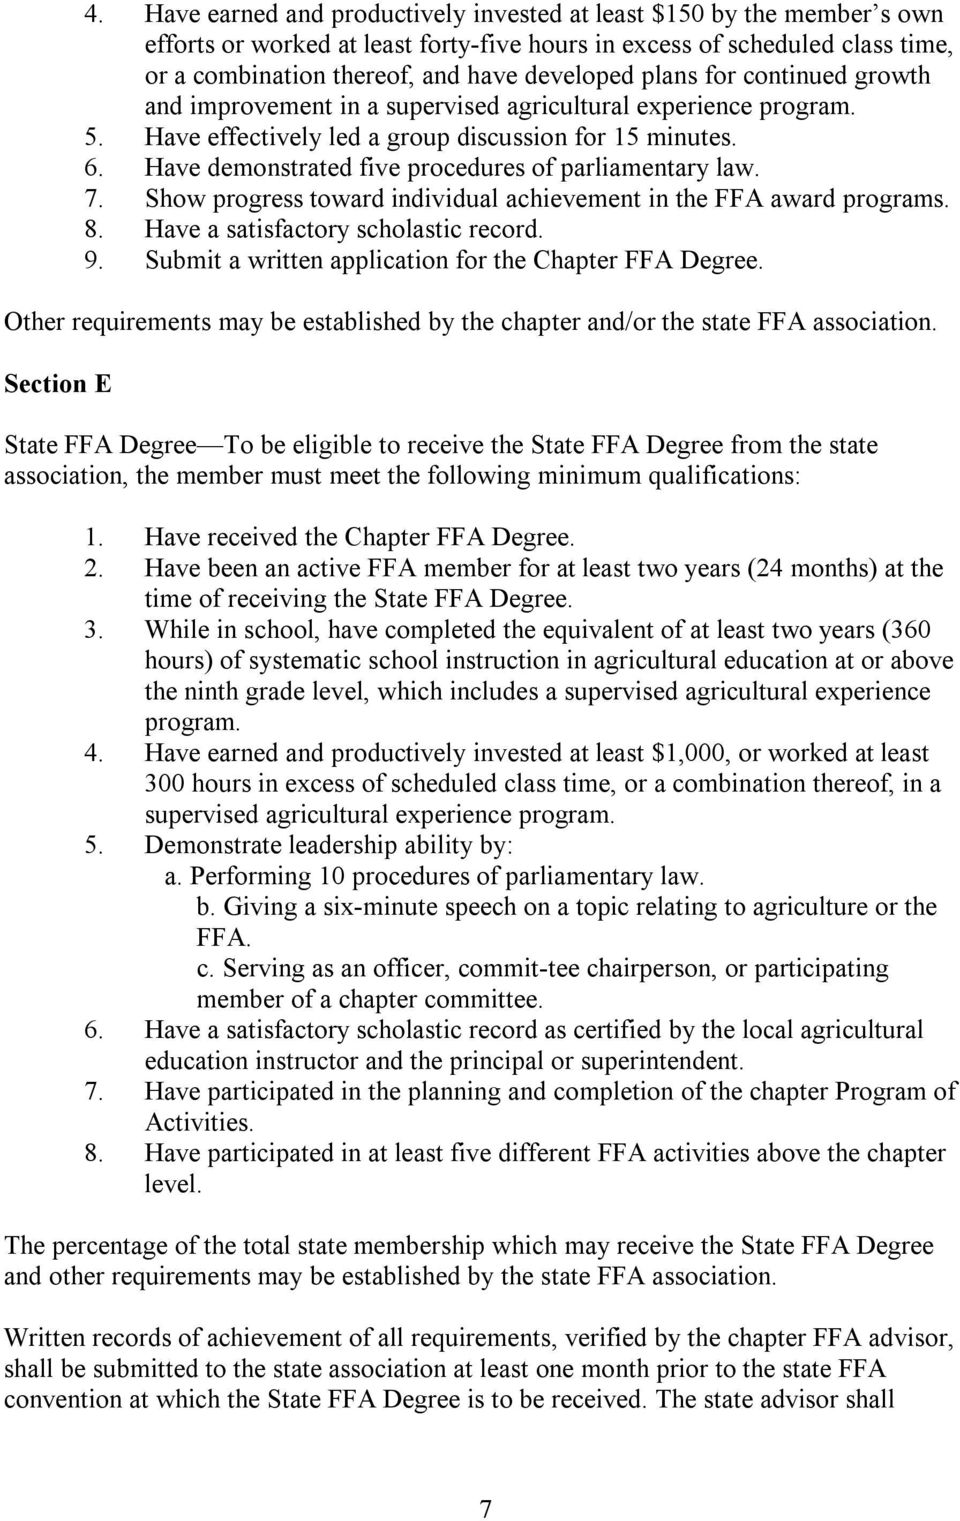 Have demonstrated five procedures of parliamentary law. 7. Show progress toward individual achievement in the FFA award programs. 8. Have a satisfactory scholastic record. 9.